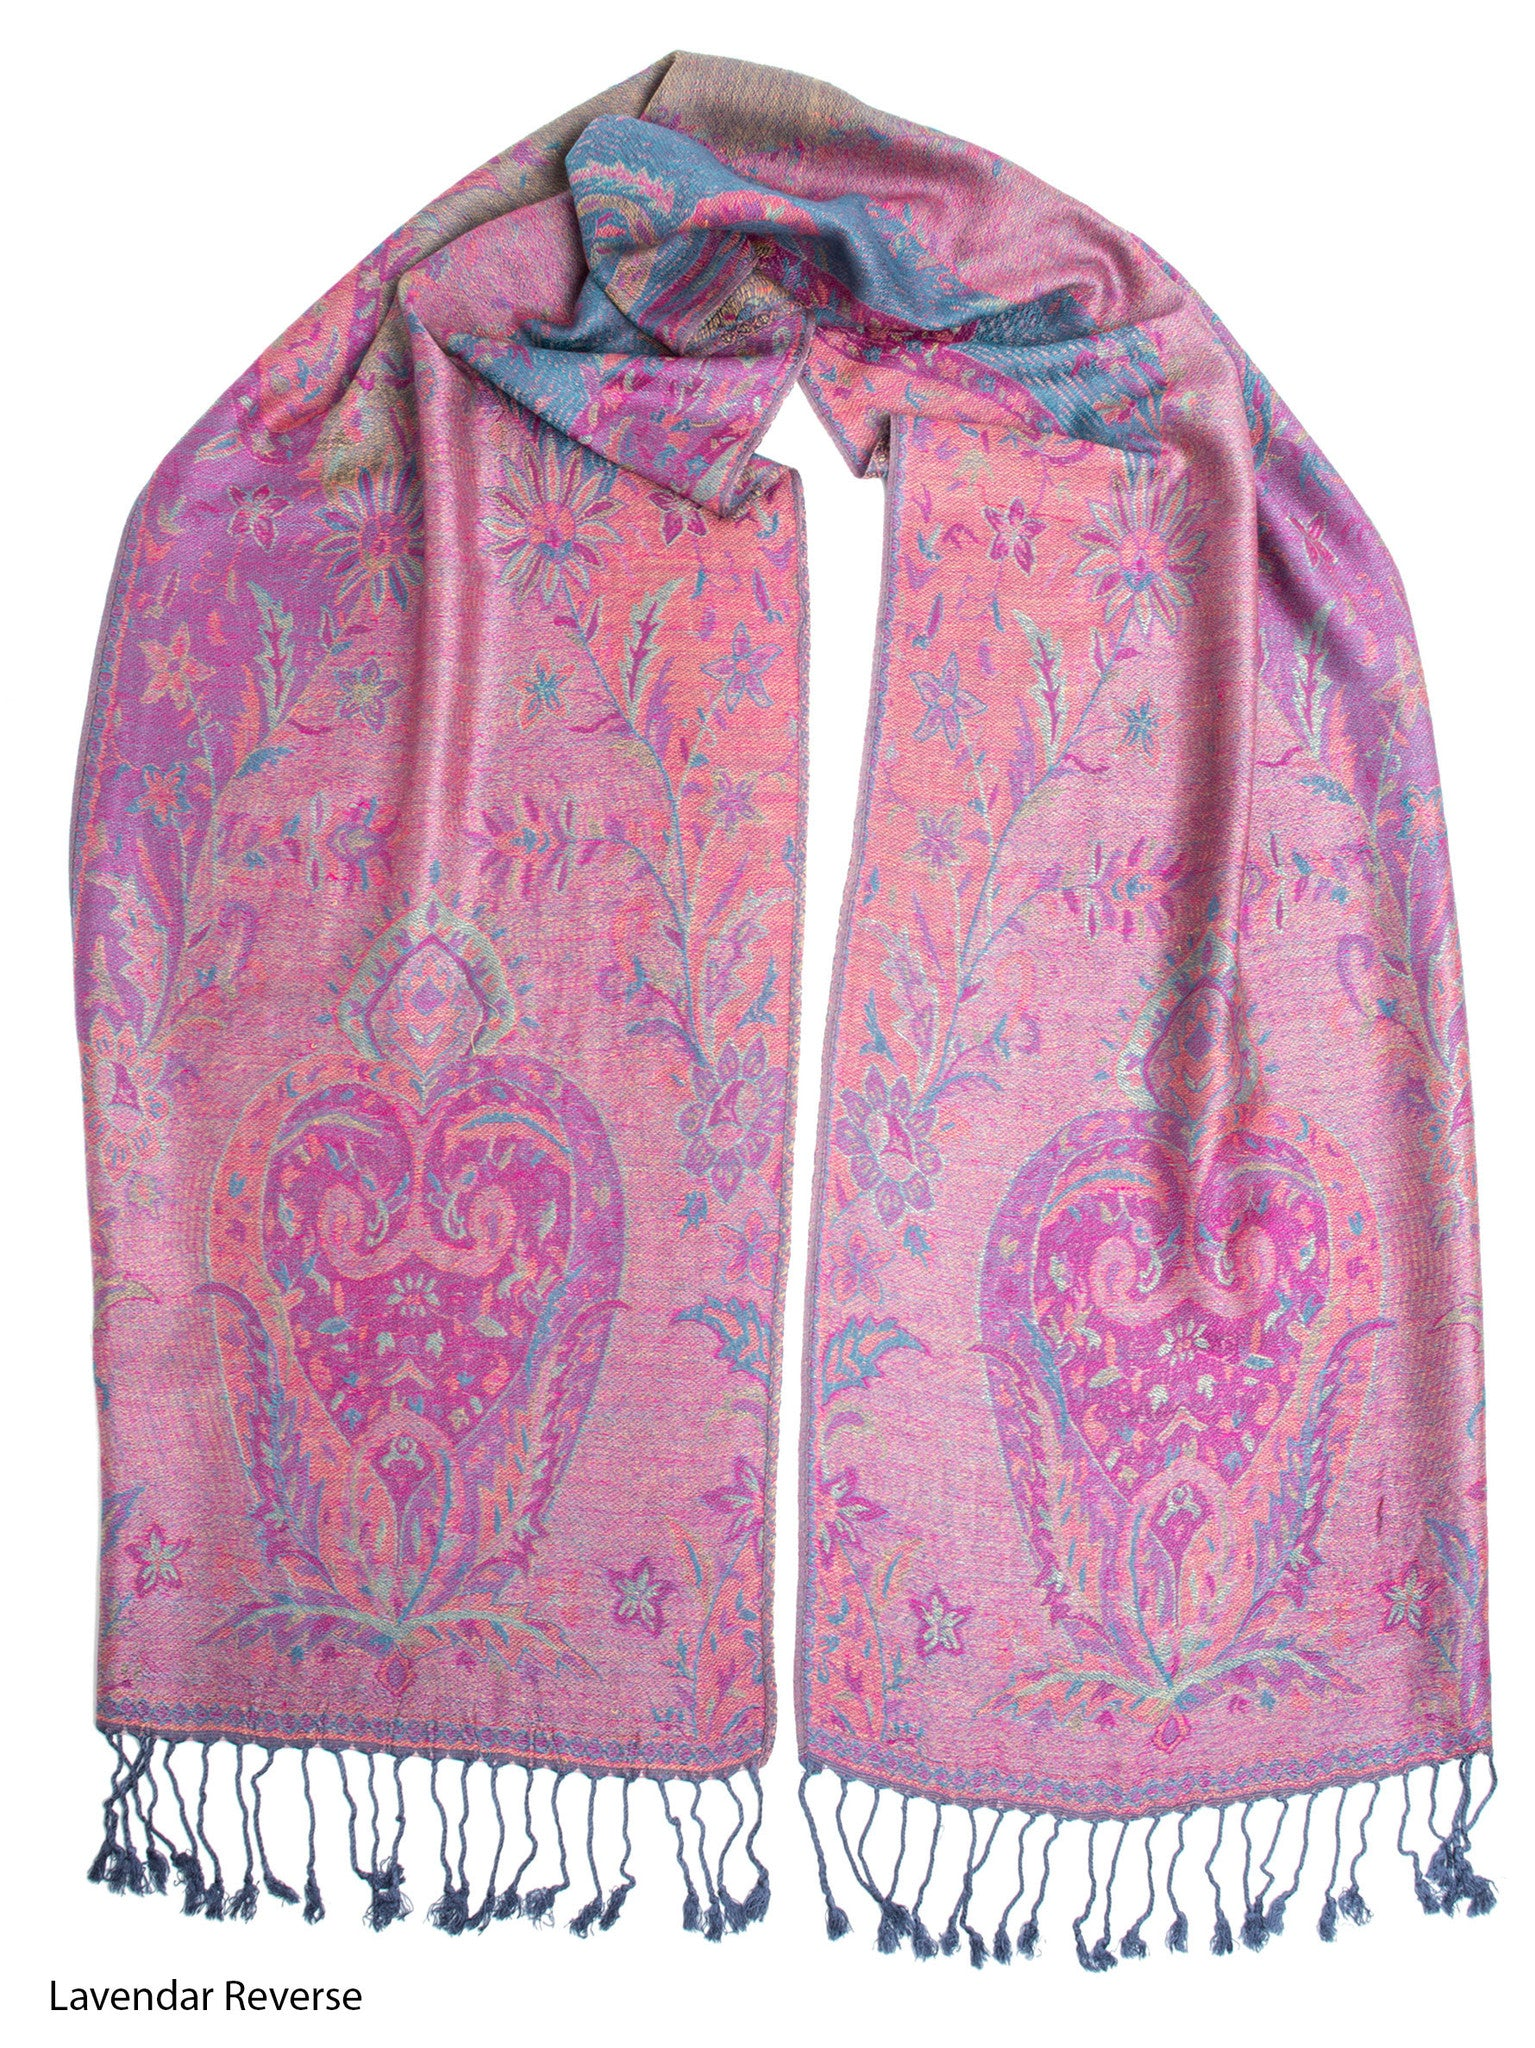 Scarves - Ramaya Scarf, Reversible Pashmina Indian Paisley Traditional Jacquard Scarf -() Bohomonde  - 8